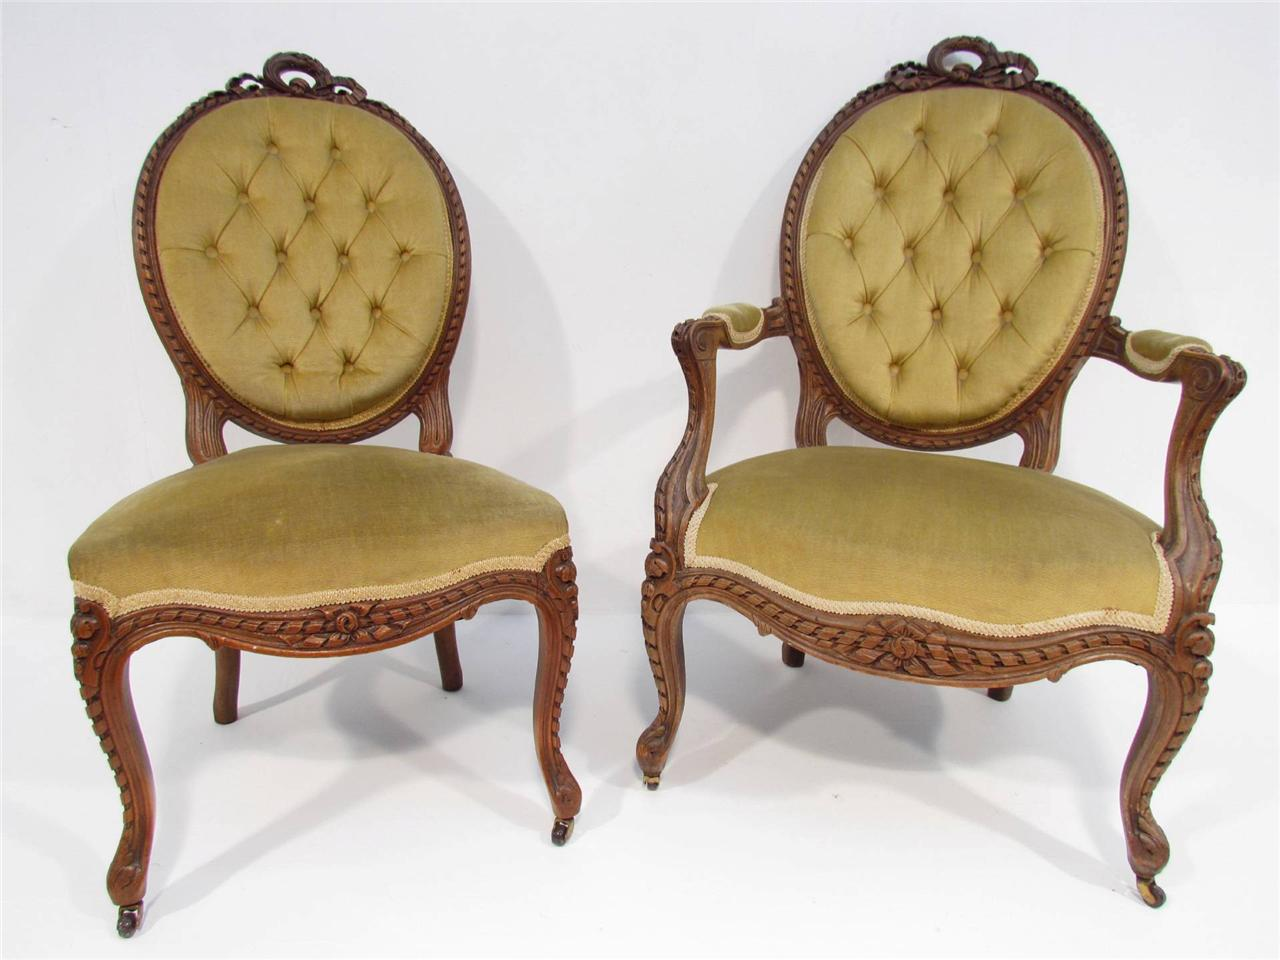 vintage bedroom chair ebay aeron office review a beautiful pair of antique french oak chairs c 1920